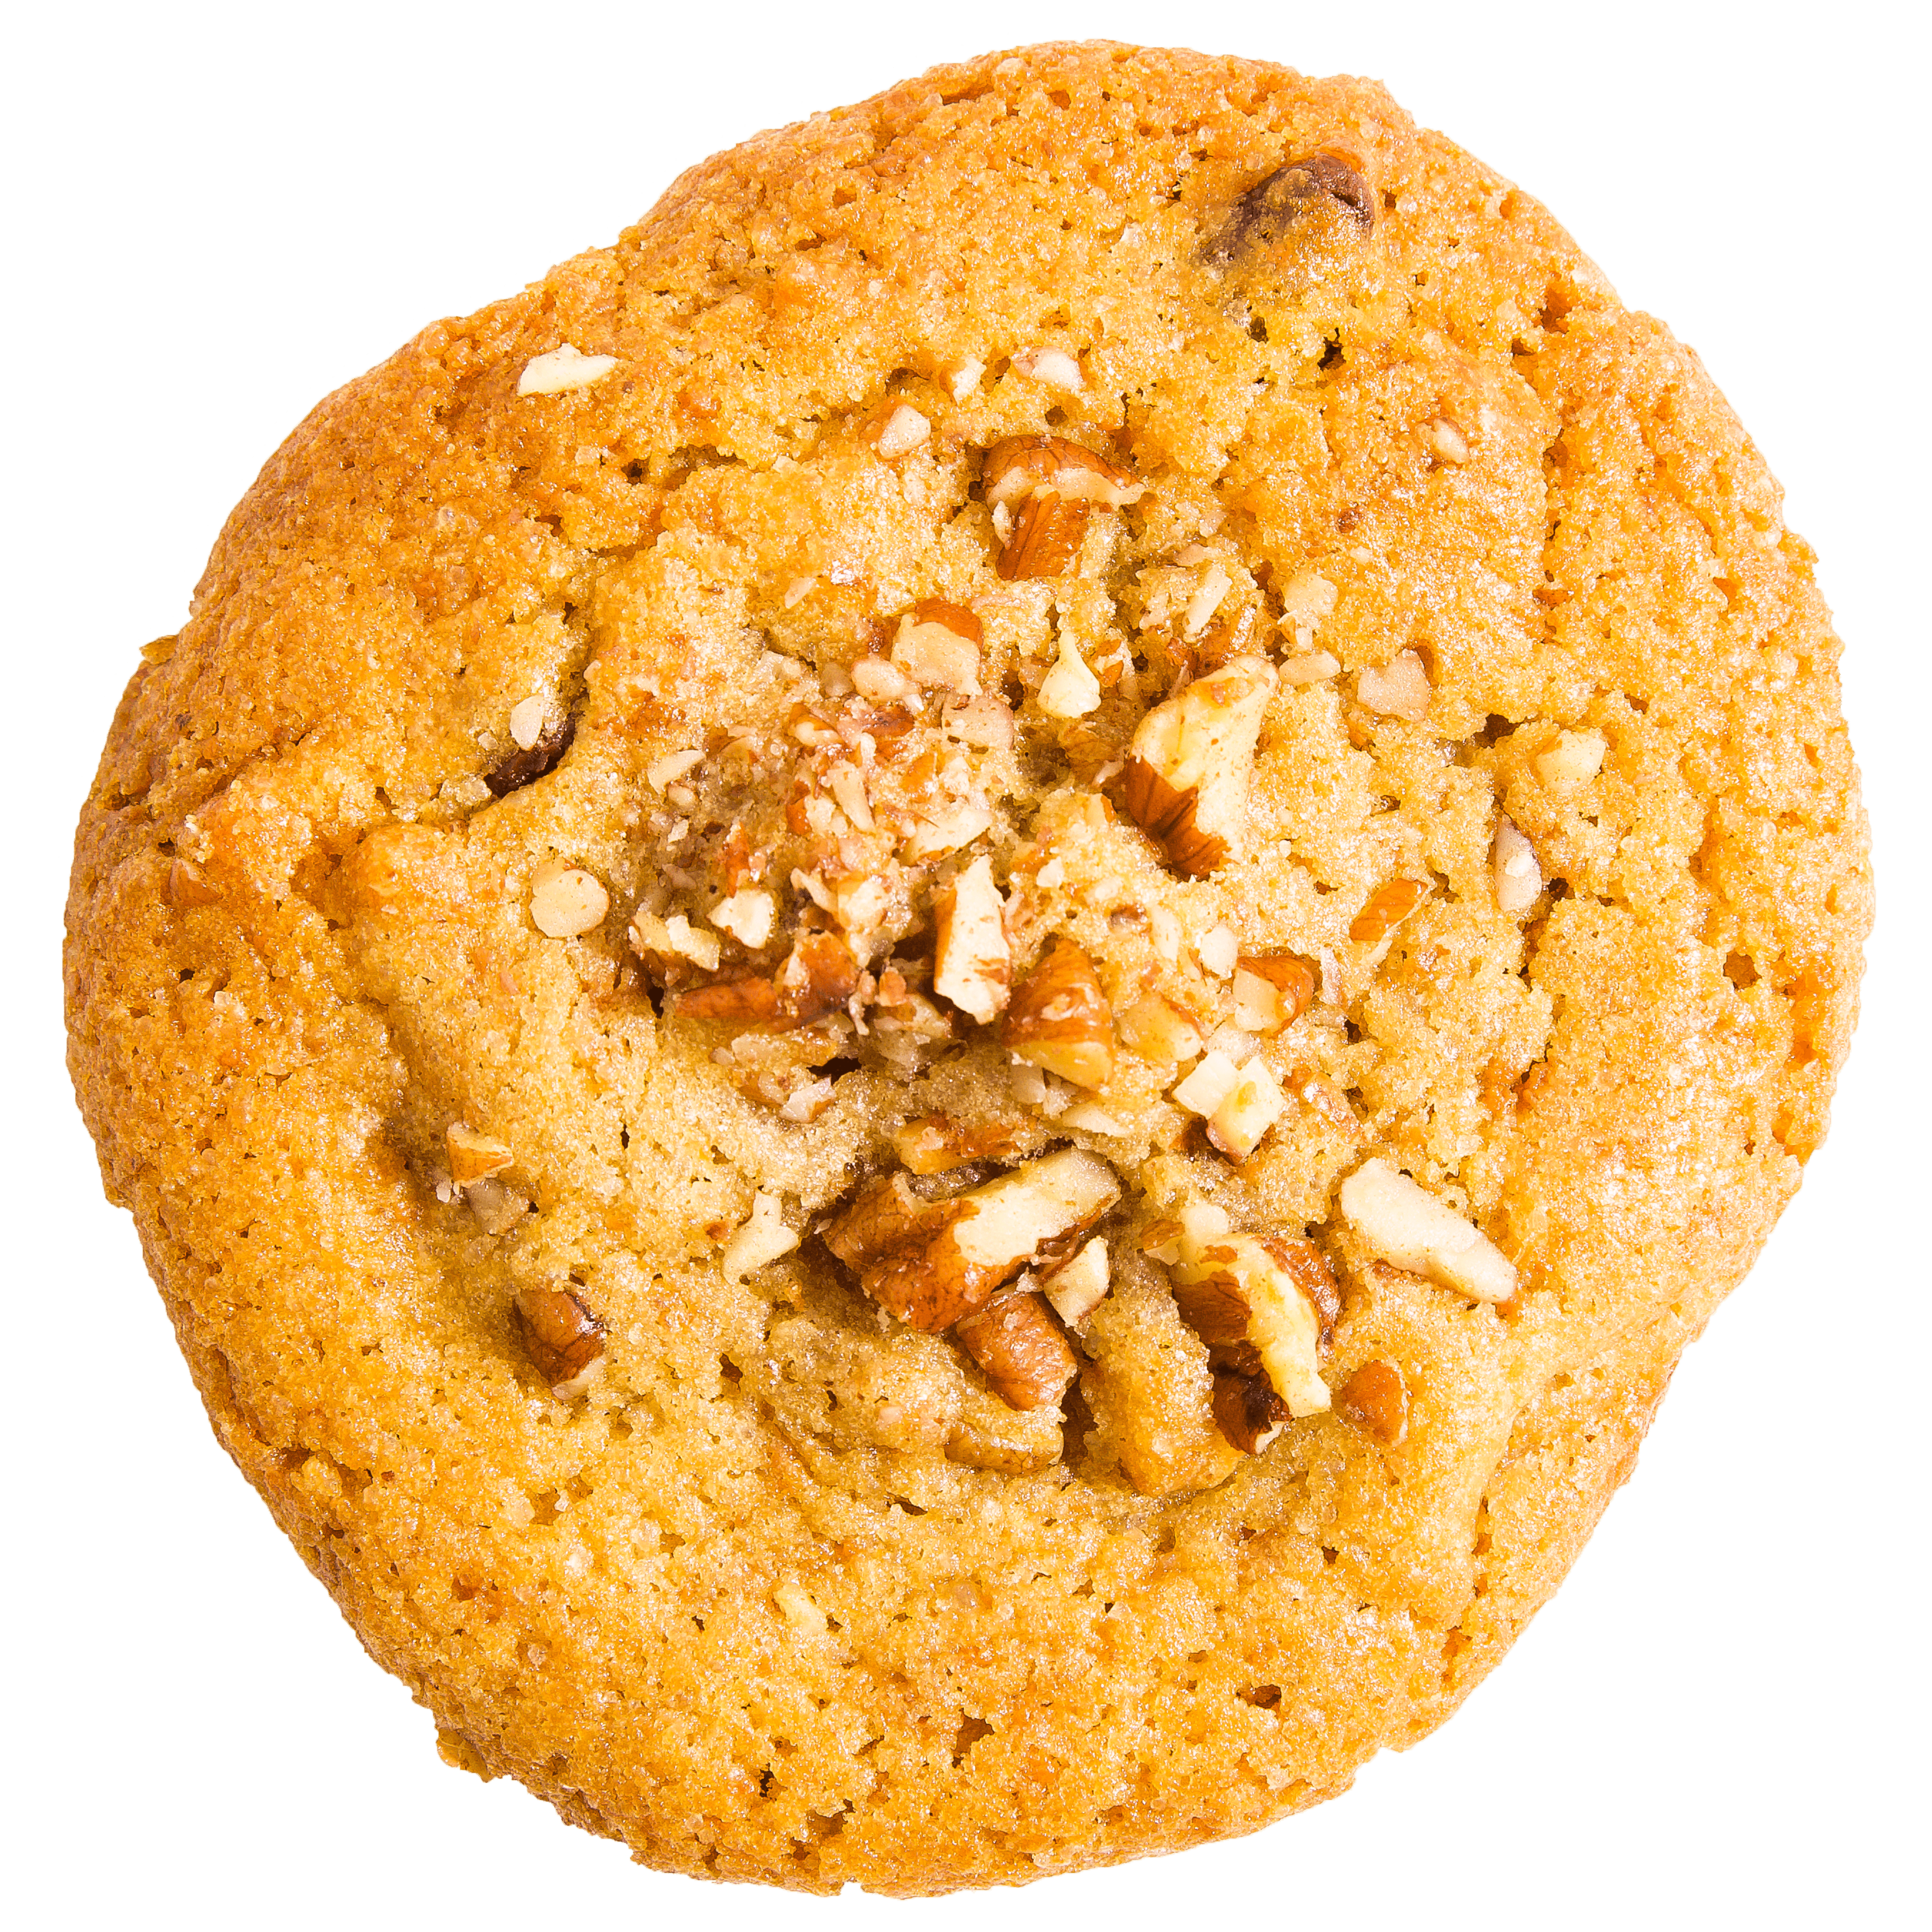 Cookie flavor 5 transparent.png